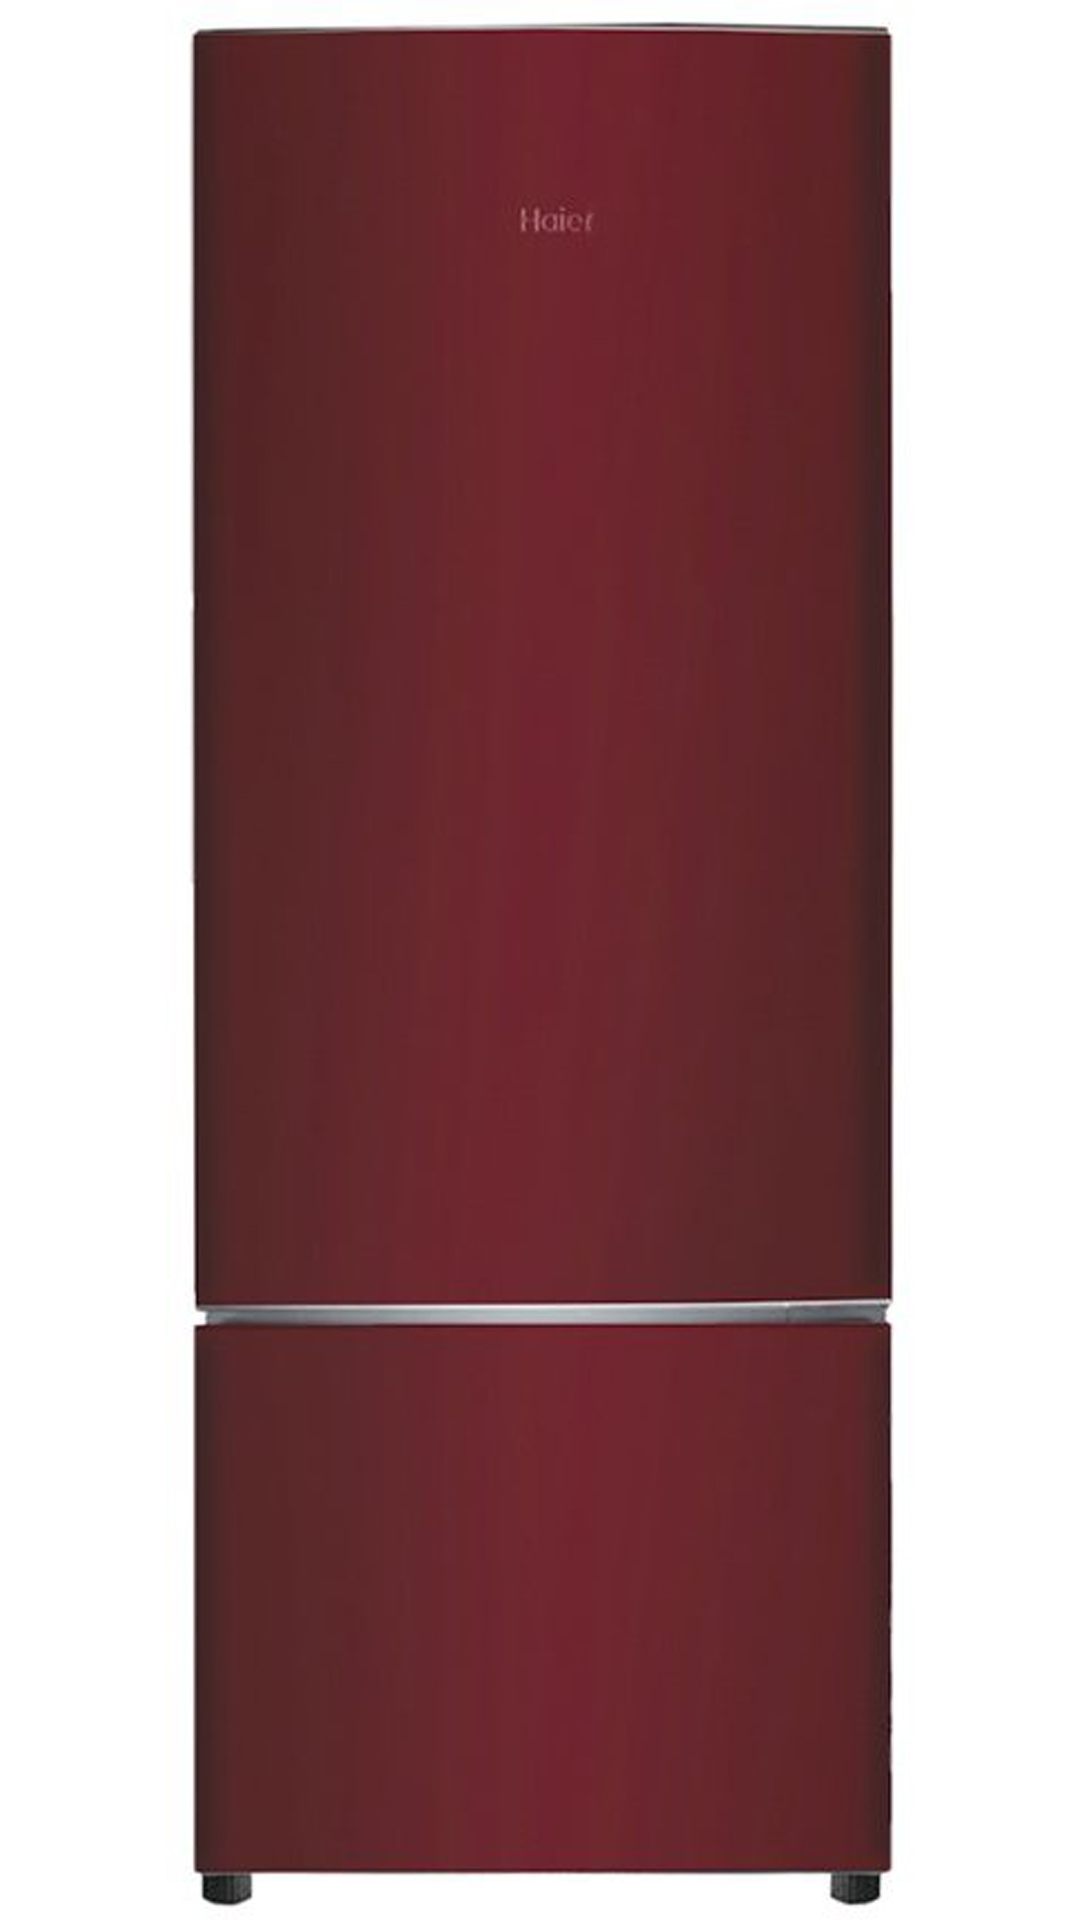 Haier HRB-3653BS-H 345 Litres Double Door Refrigerator